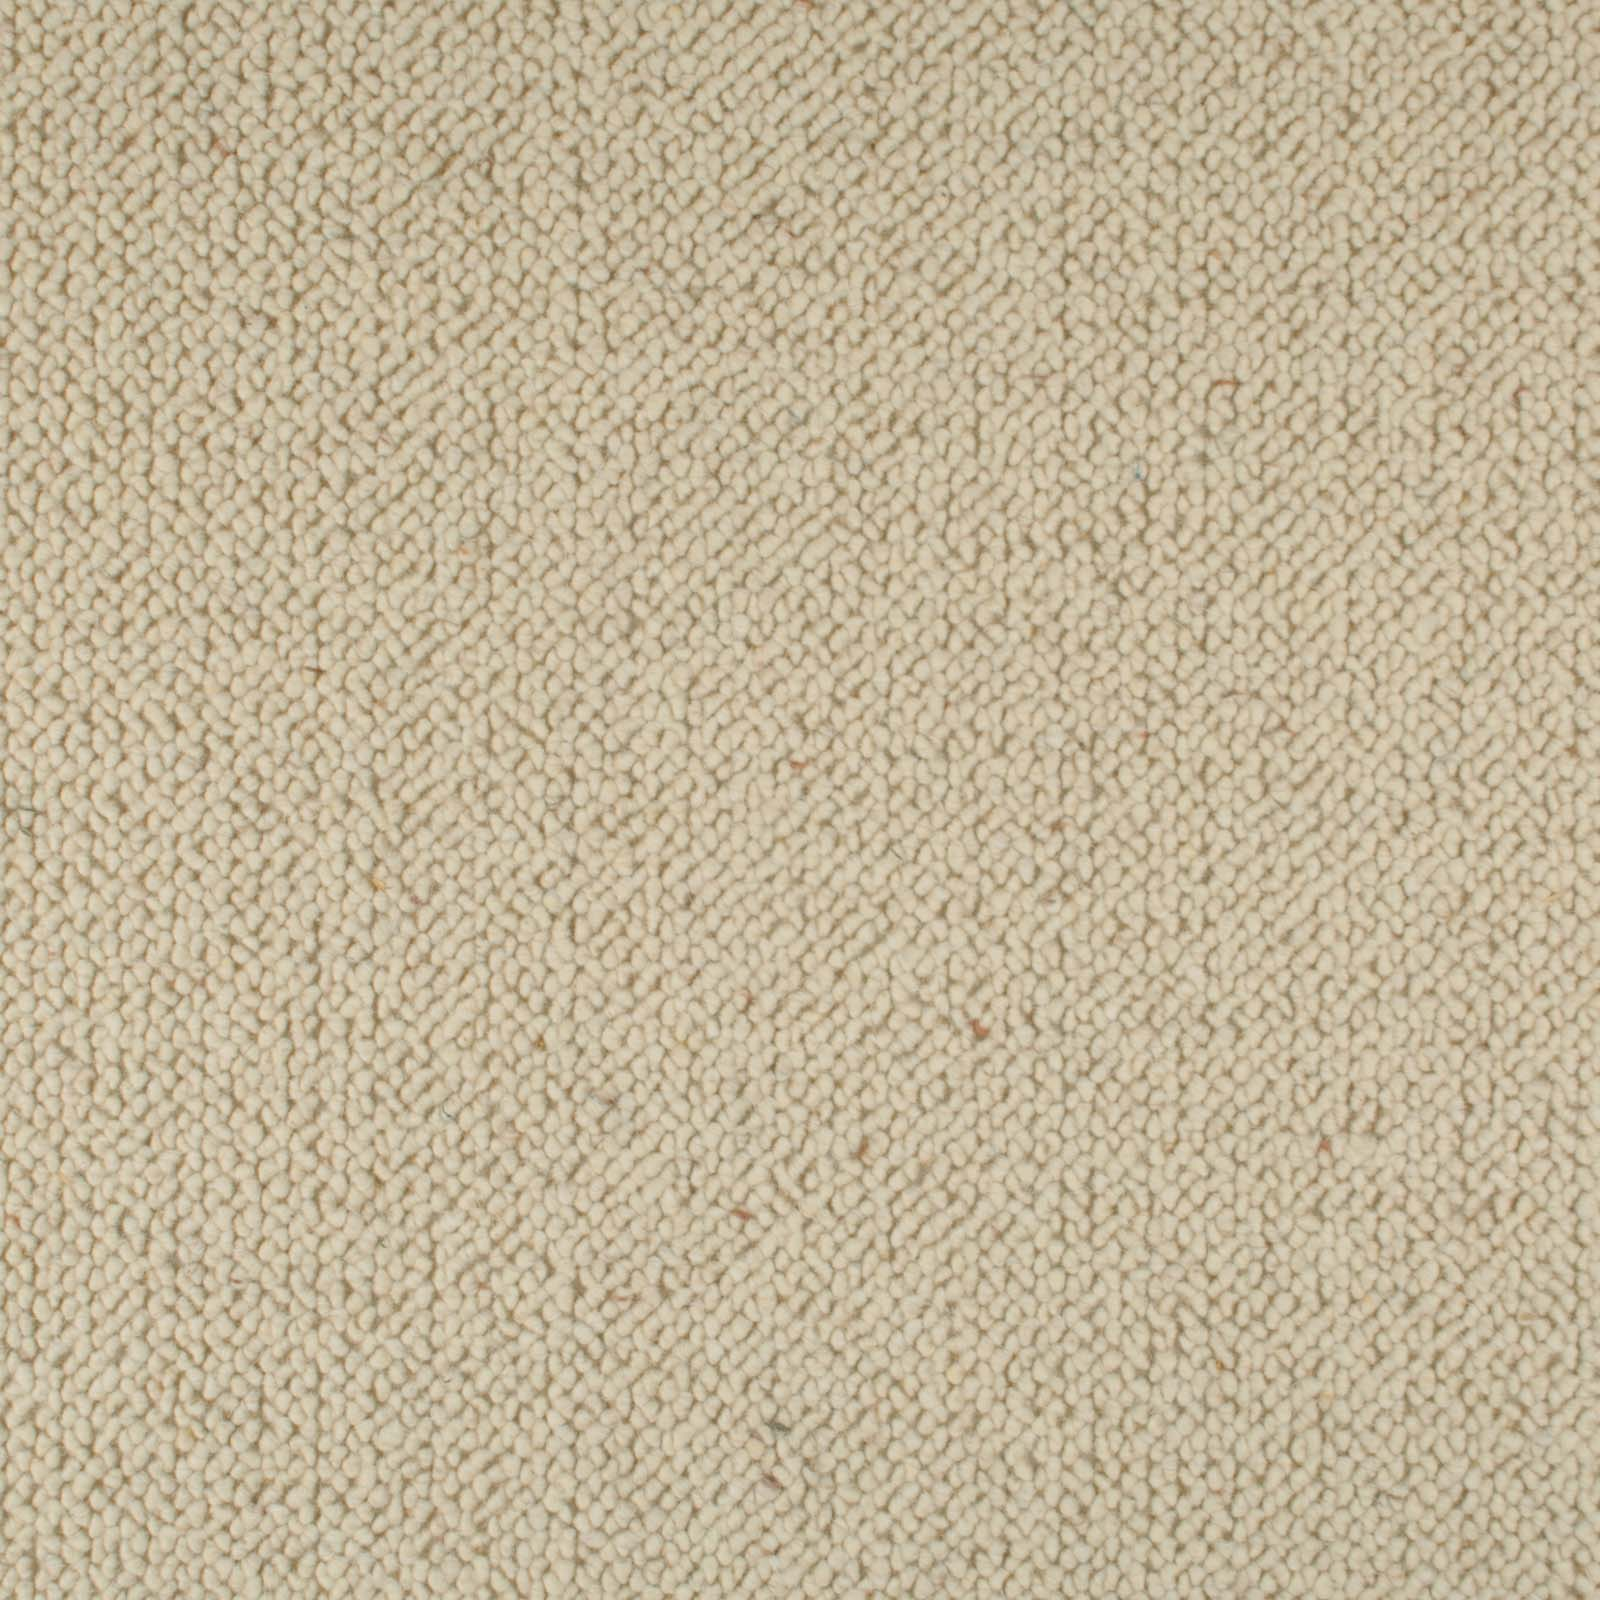 Soft Cloud Corsa Berber Deluxe Wool Carpet - Far